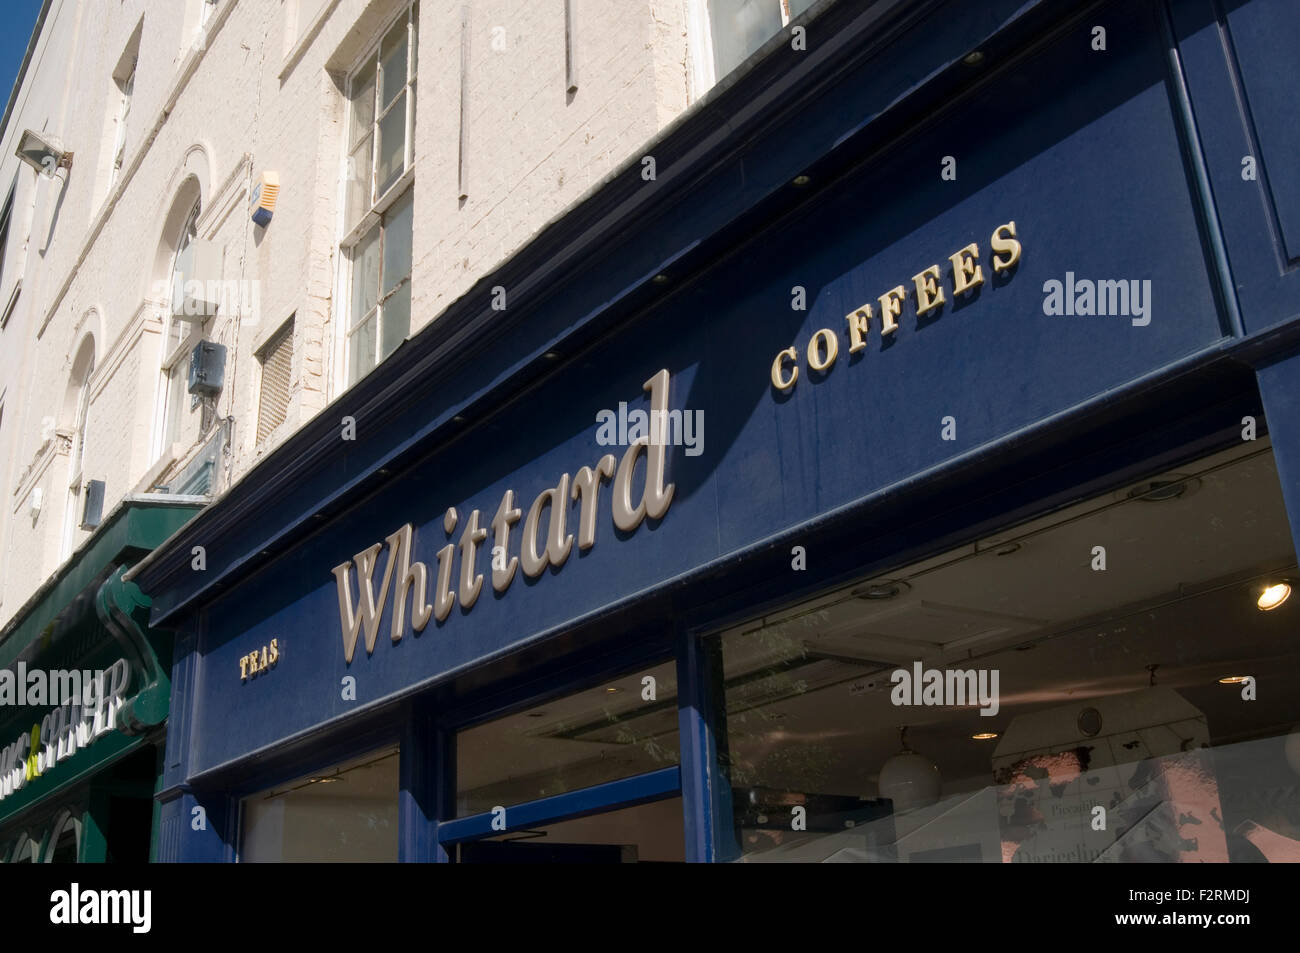 whittard whittards tea and coffee shops shop - Stock Image